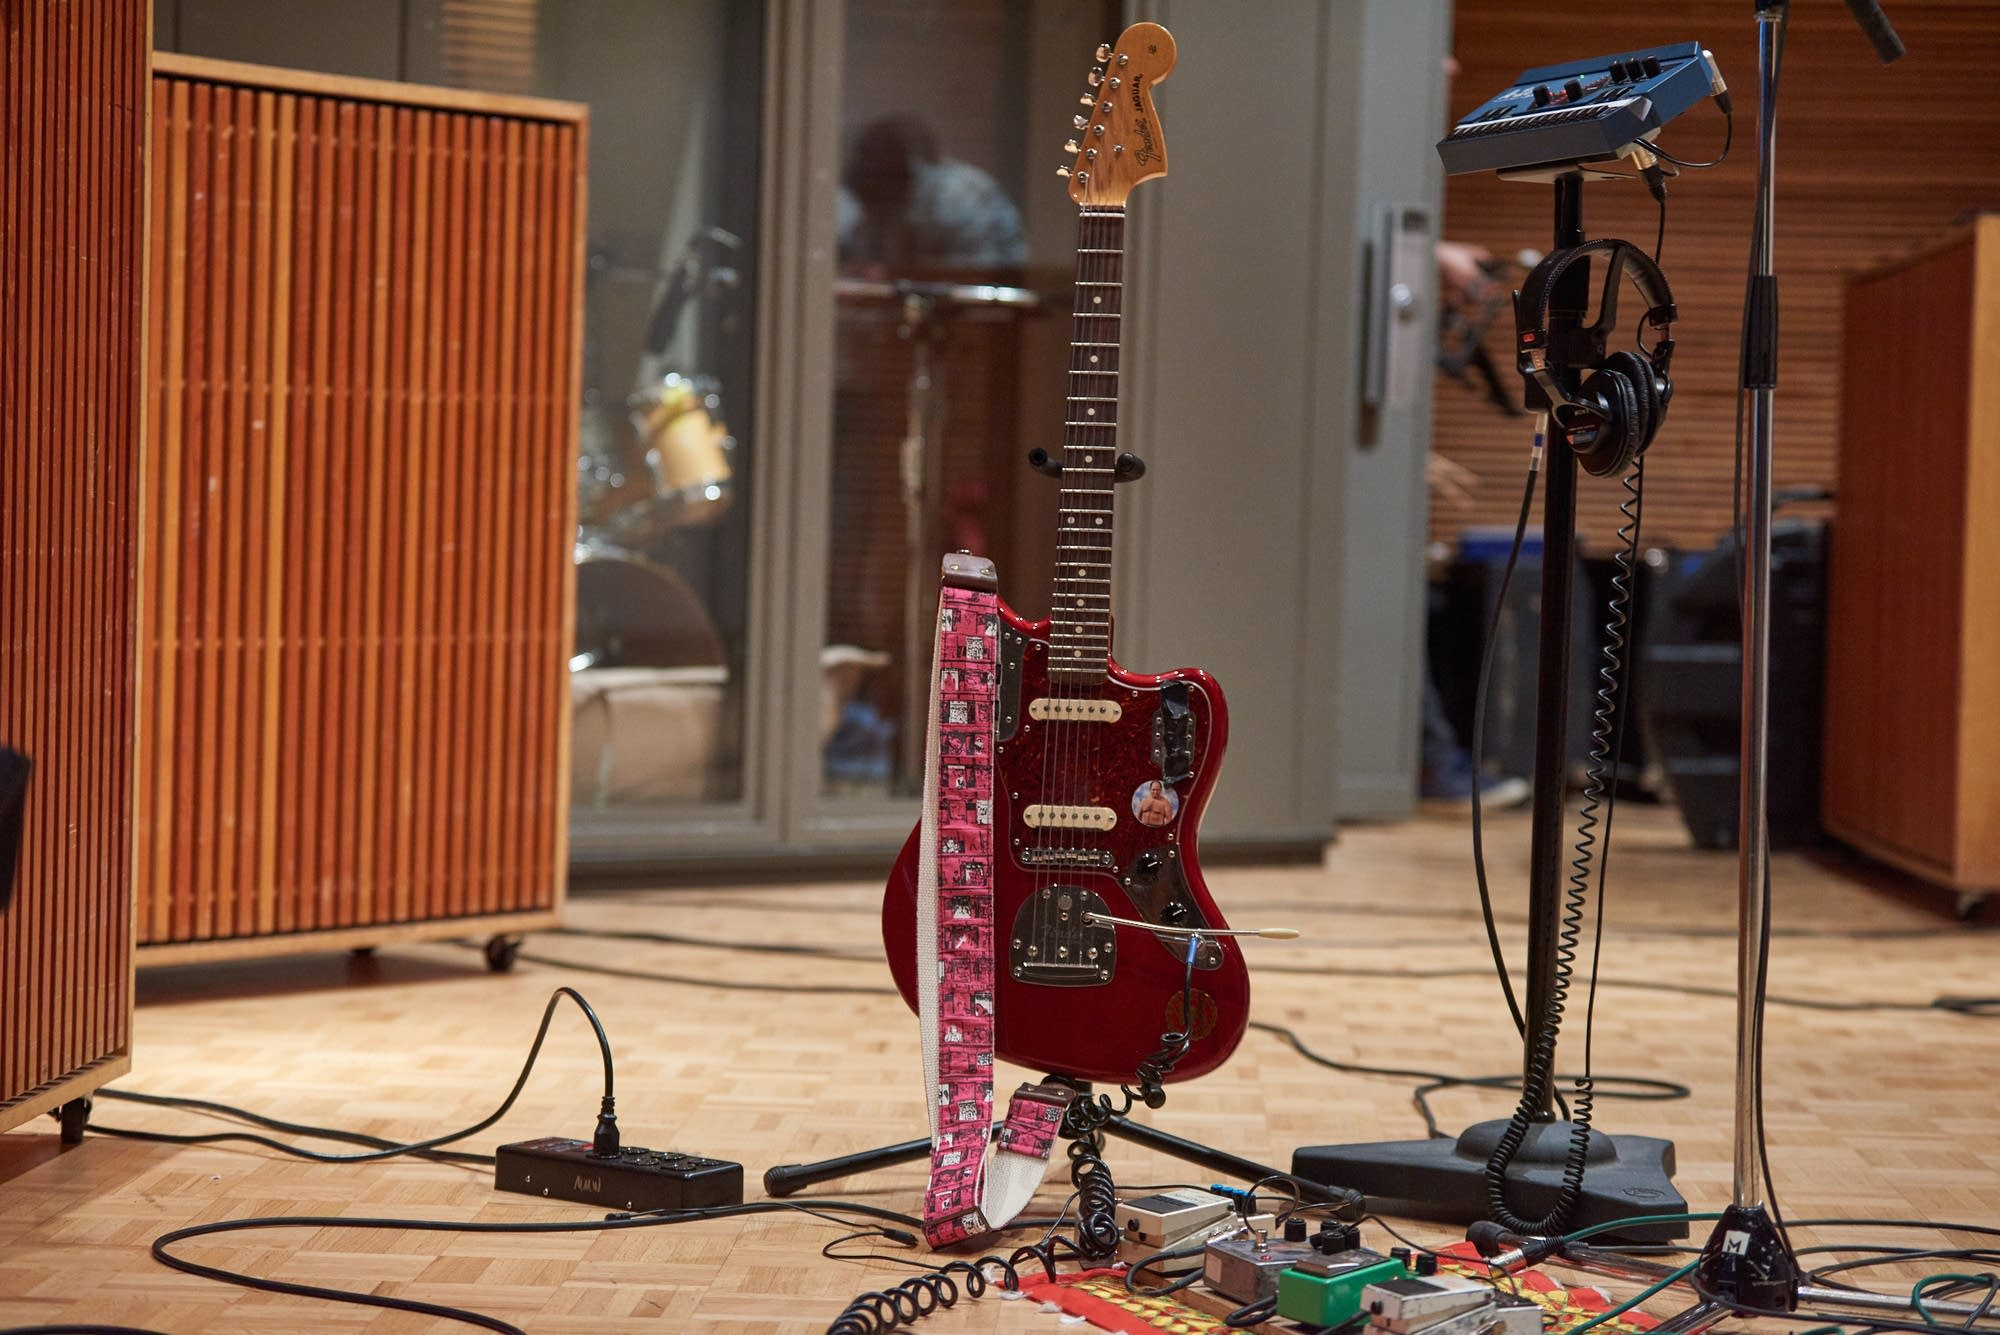 Ron Gallo's Fender Jaguar on its stand in The Current studio